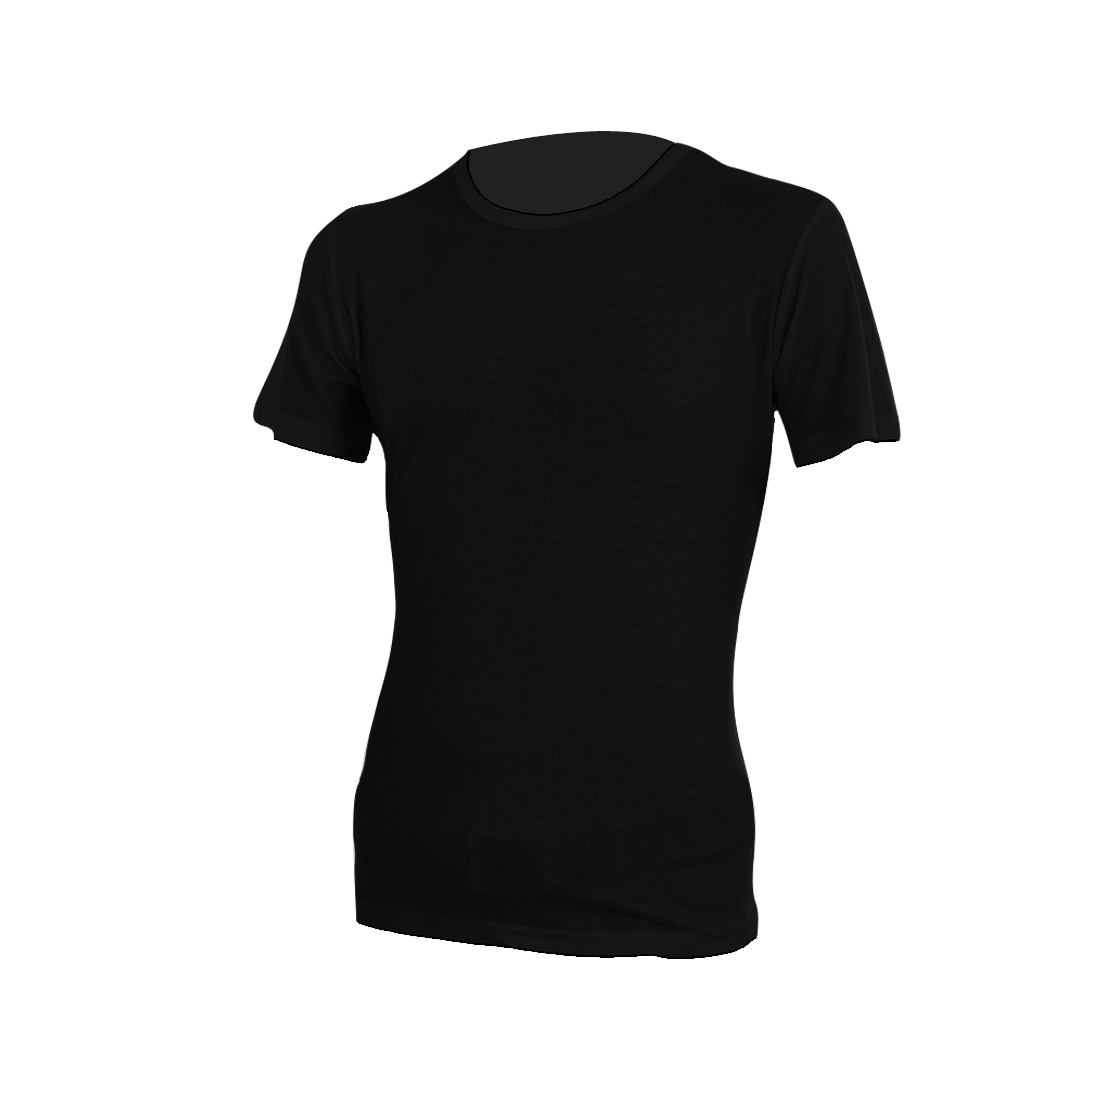 Men Short Sleeve Round Neck Pullover Design Casual Top Tee Shirt Black M